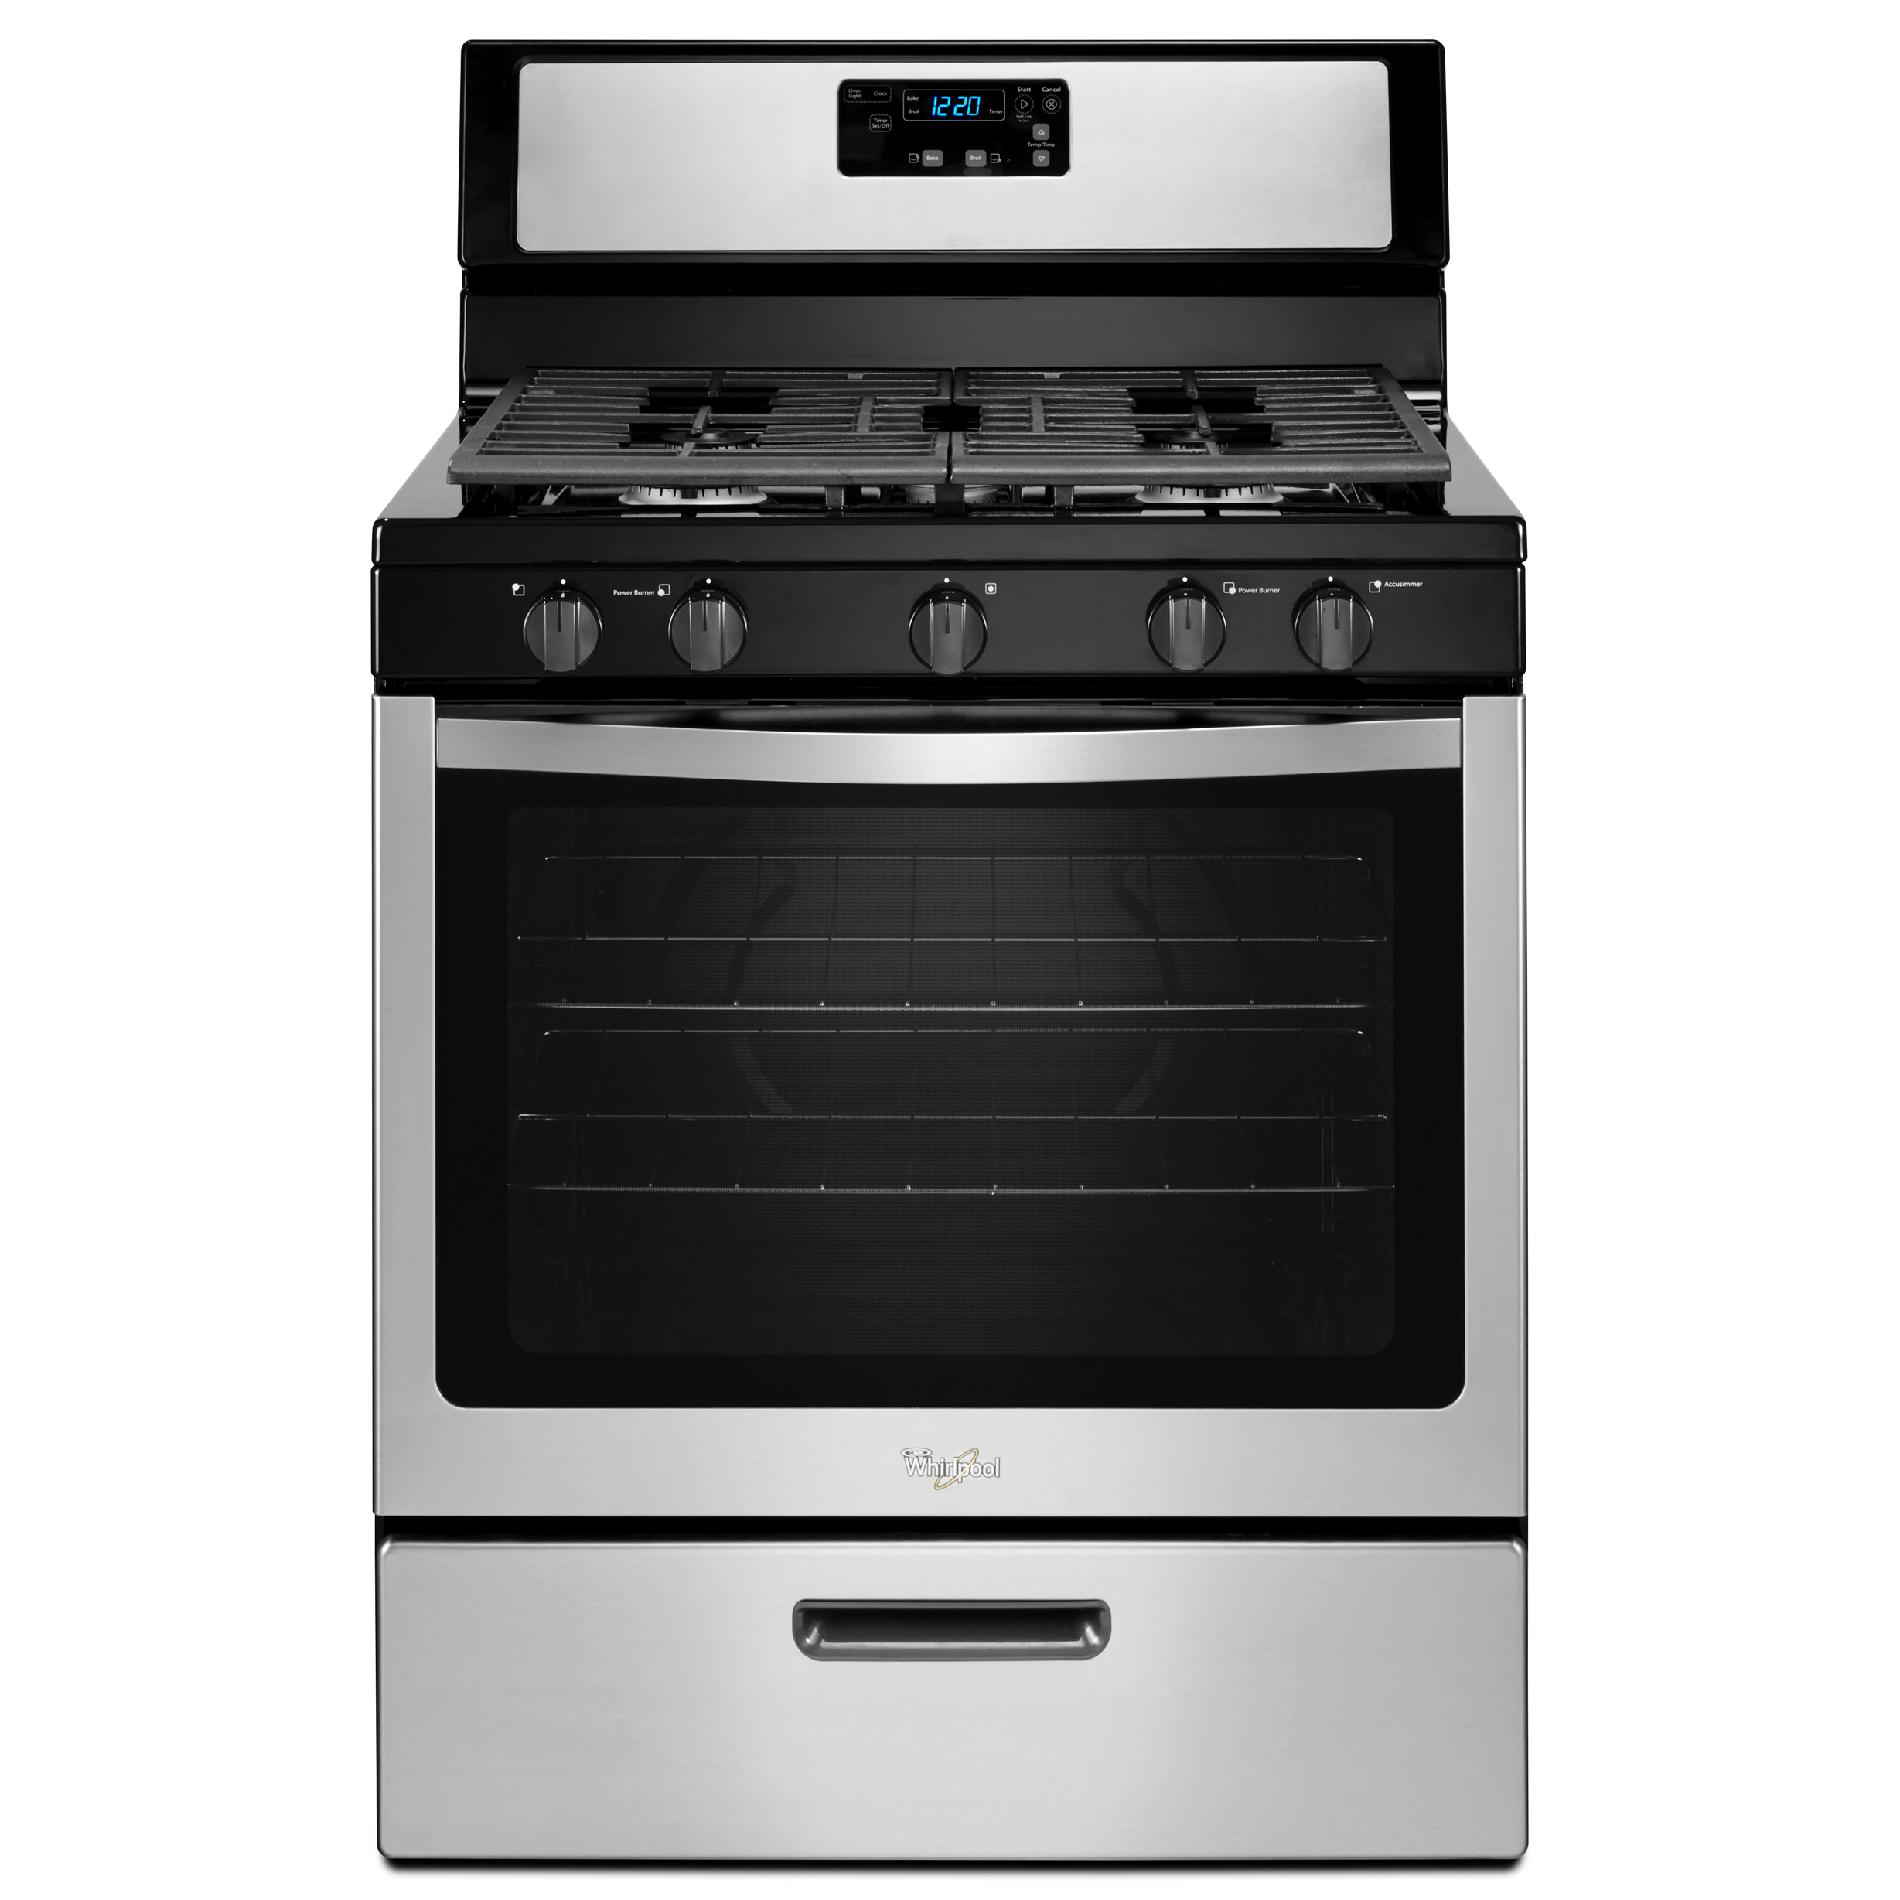 Gas Stove Prices Whirlpool Wfg505m0bs 5 1 Cu Ft Gas Range W Griddle